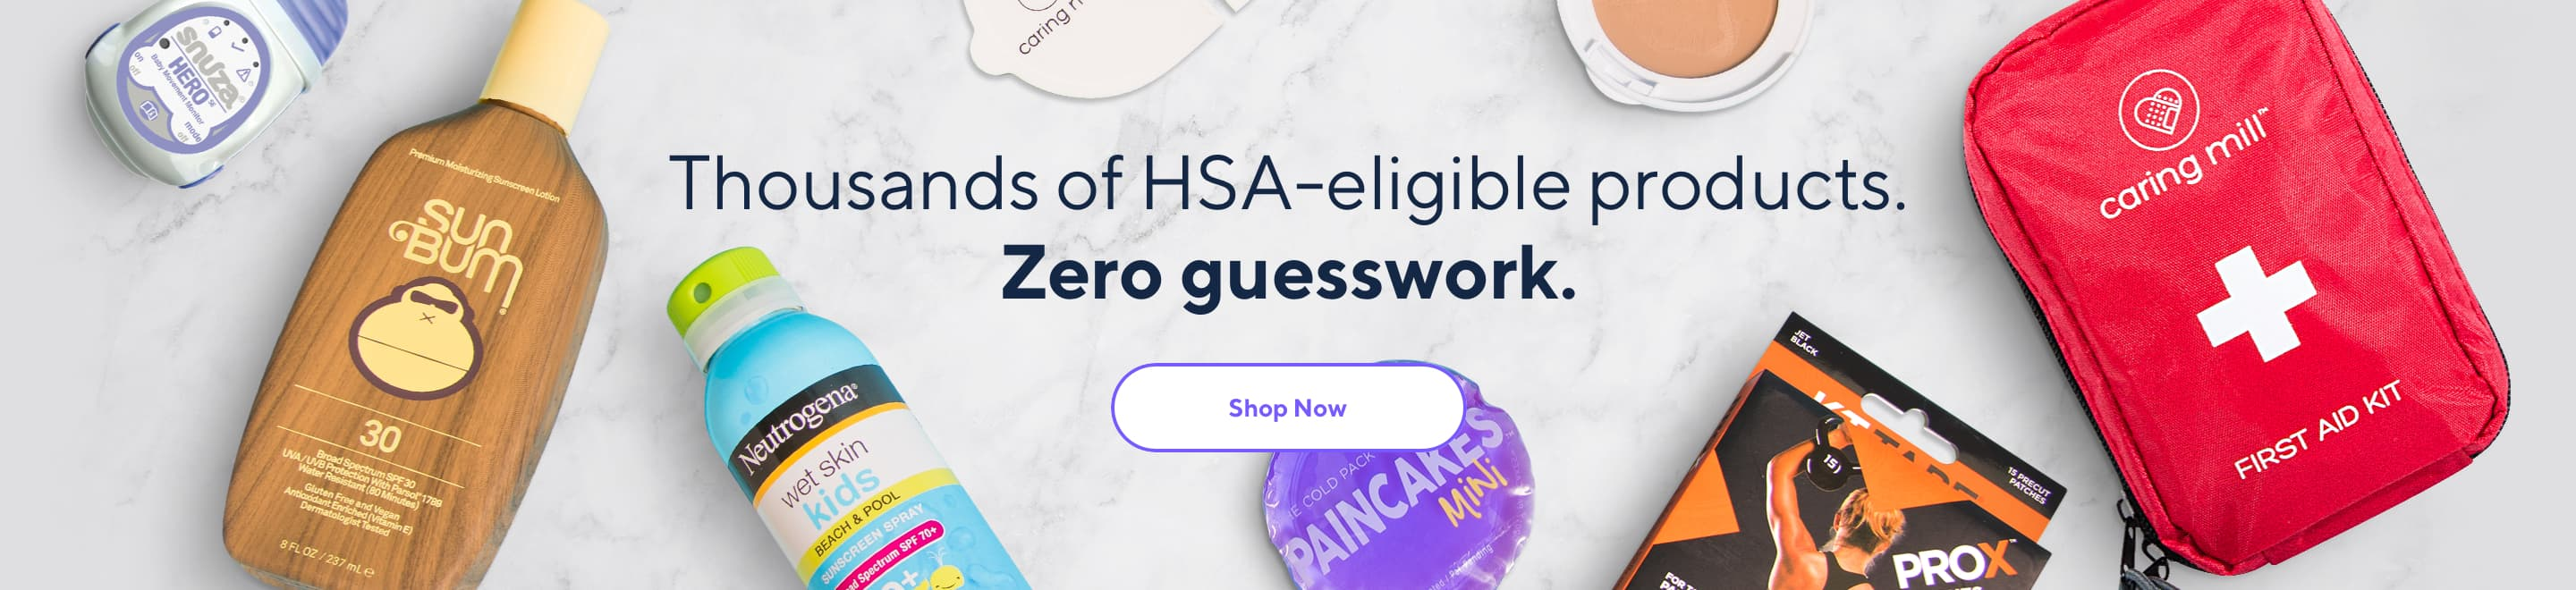 Thousands of HSA-eligible products. Zero guesswork.